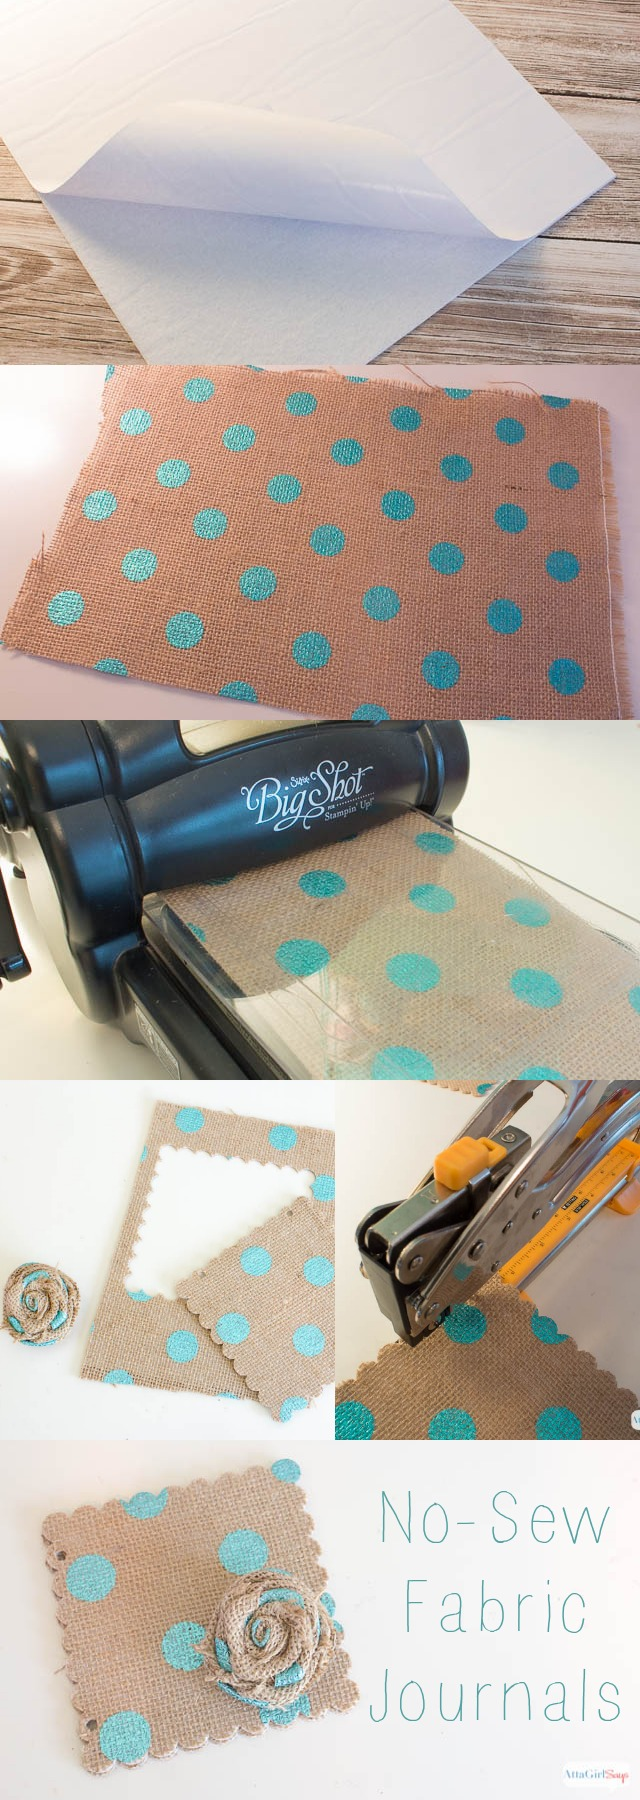 no-sew-fabric-journals-how-to